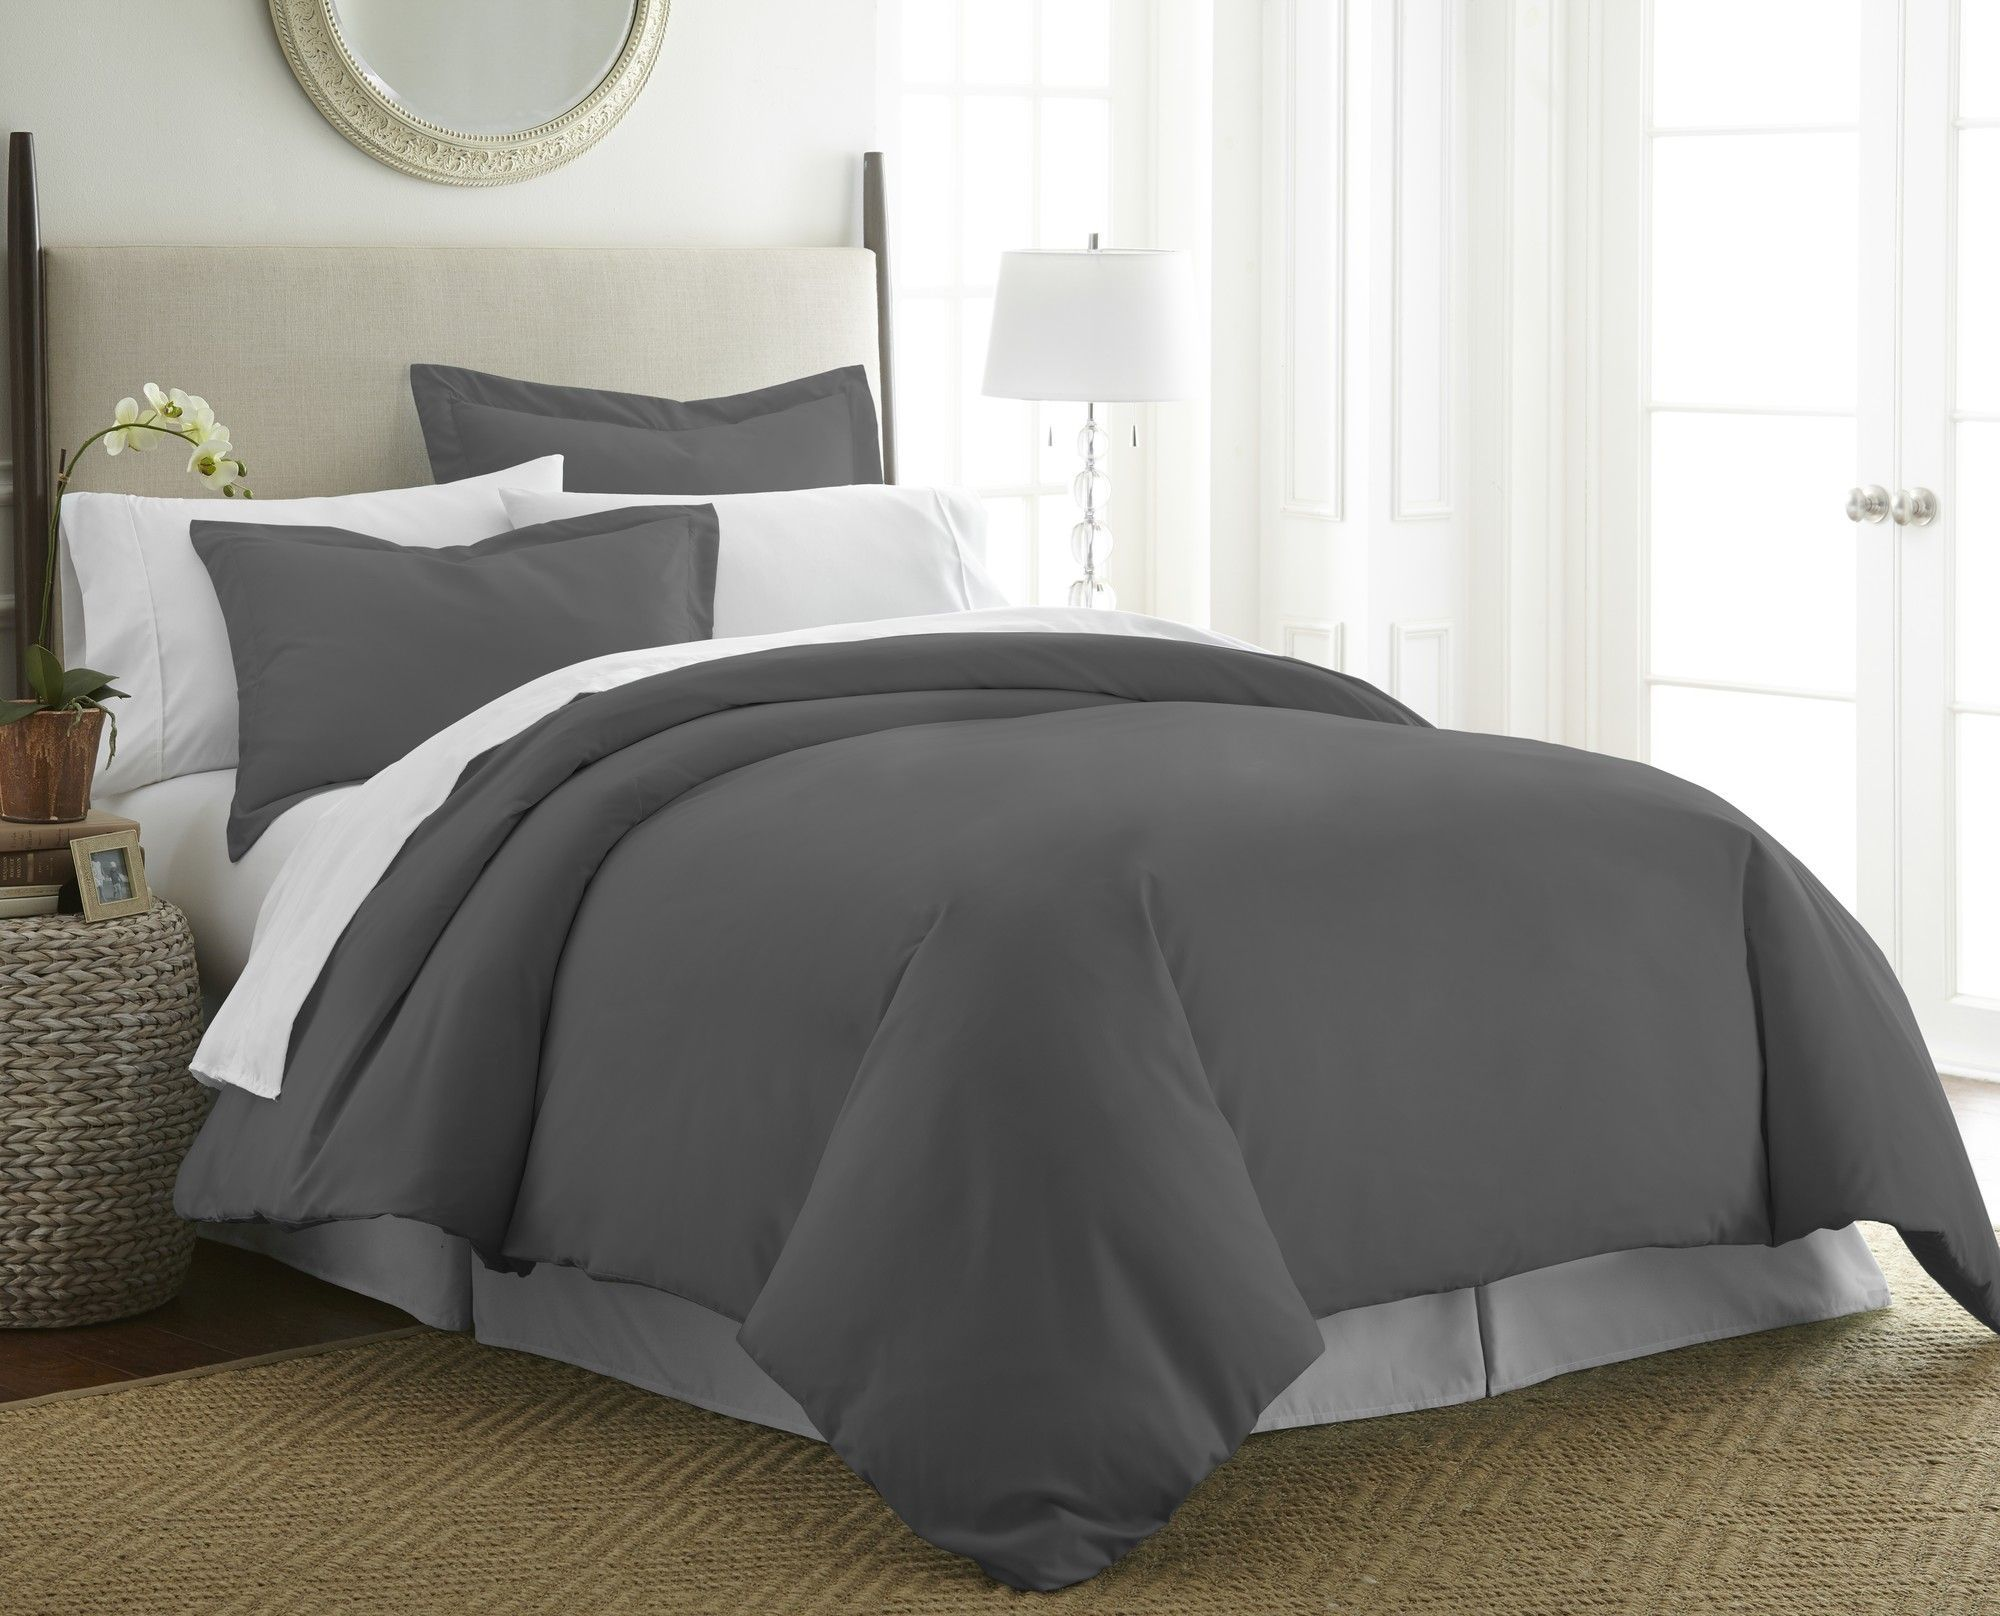 Simply Soft Duvet Cover Set Products Pinterest